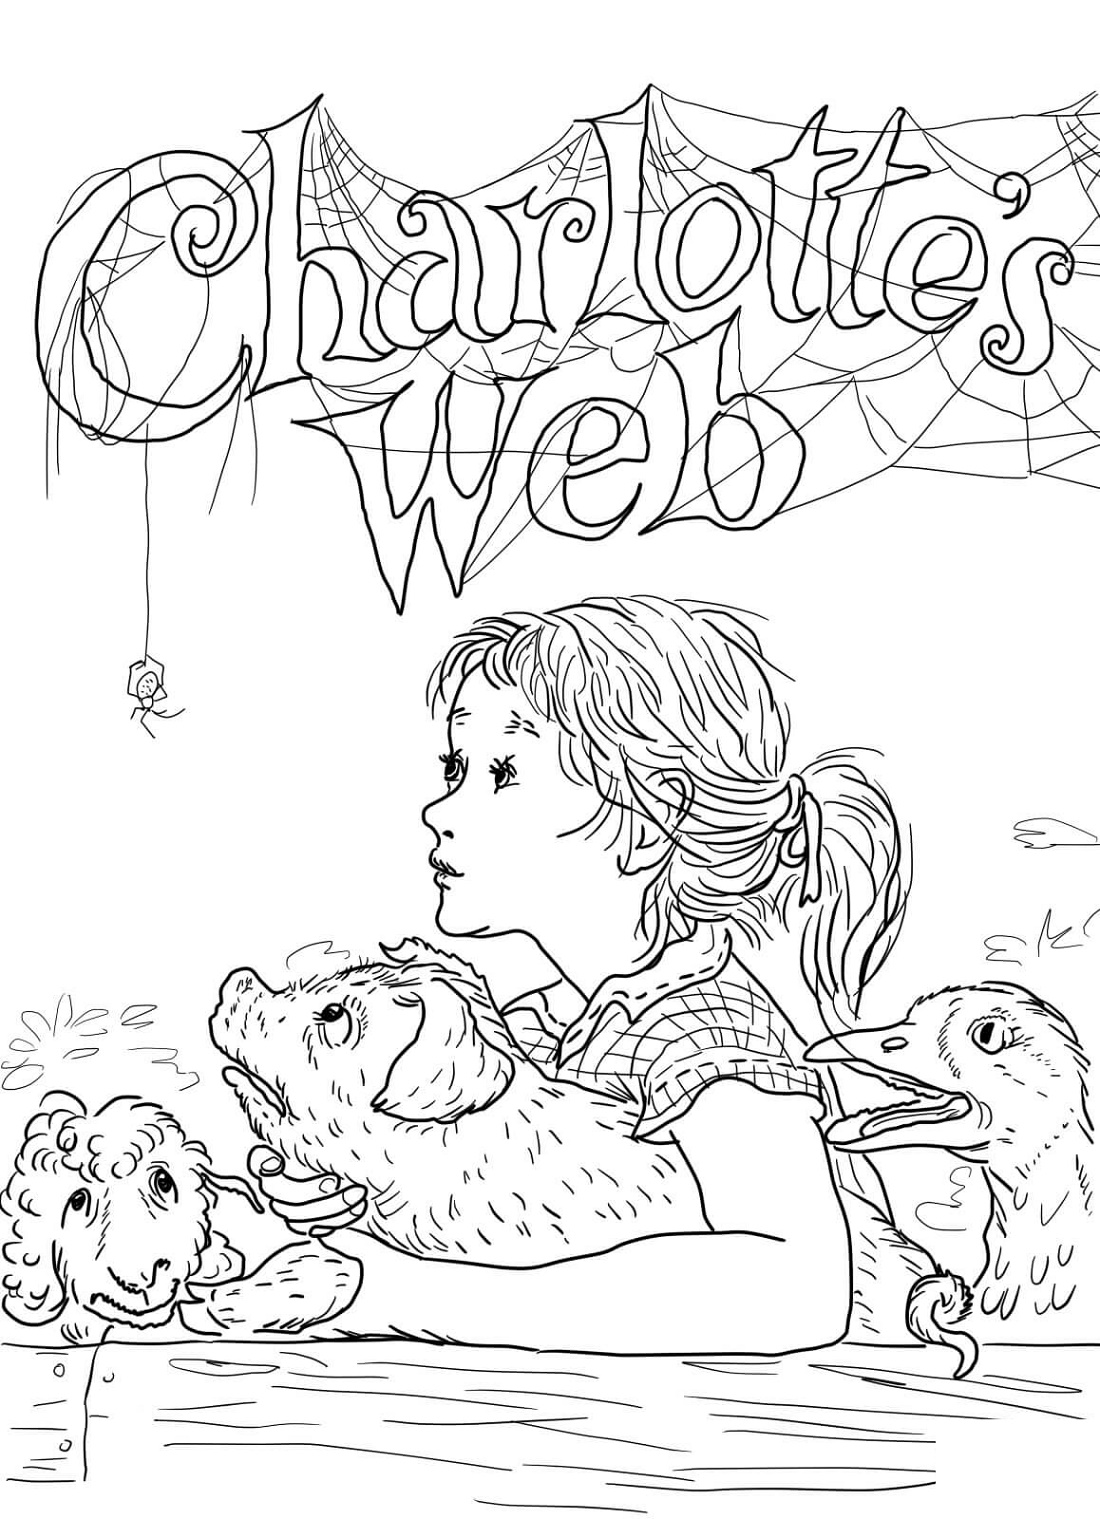 Charlotte's Web Coloring Pages Free